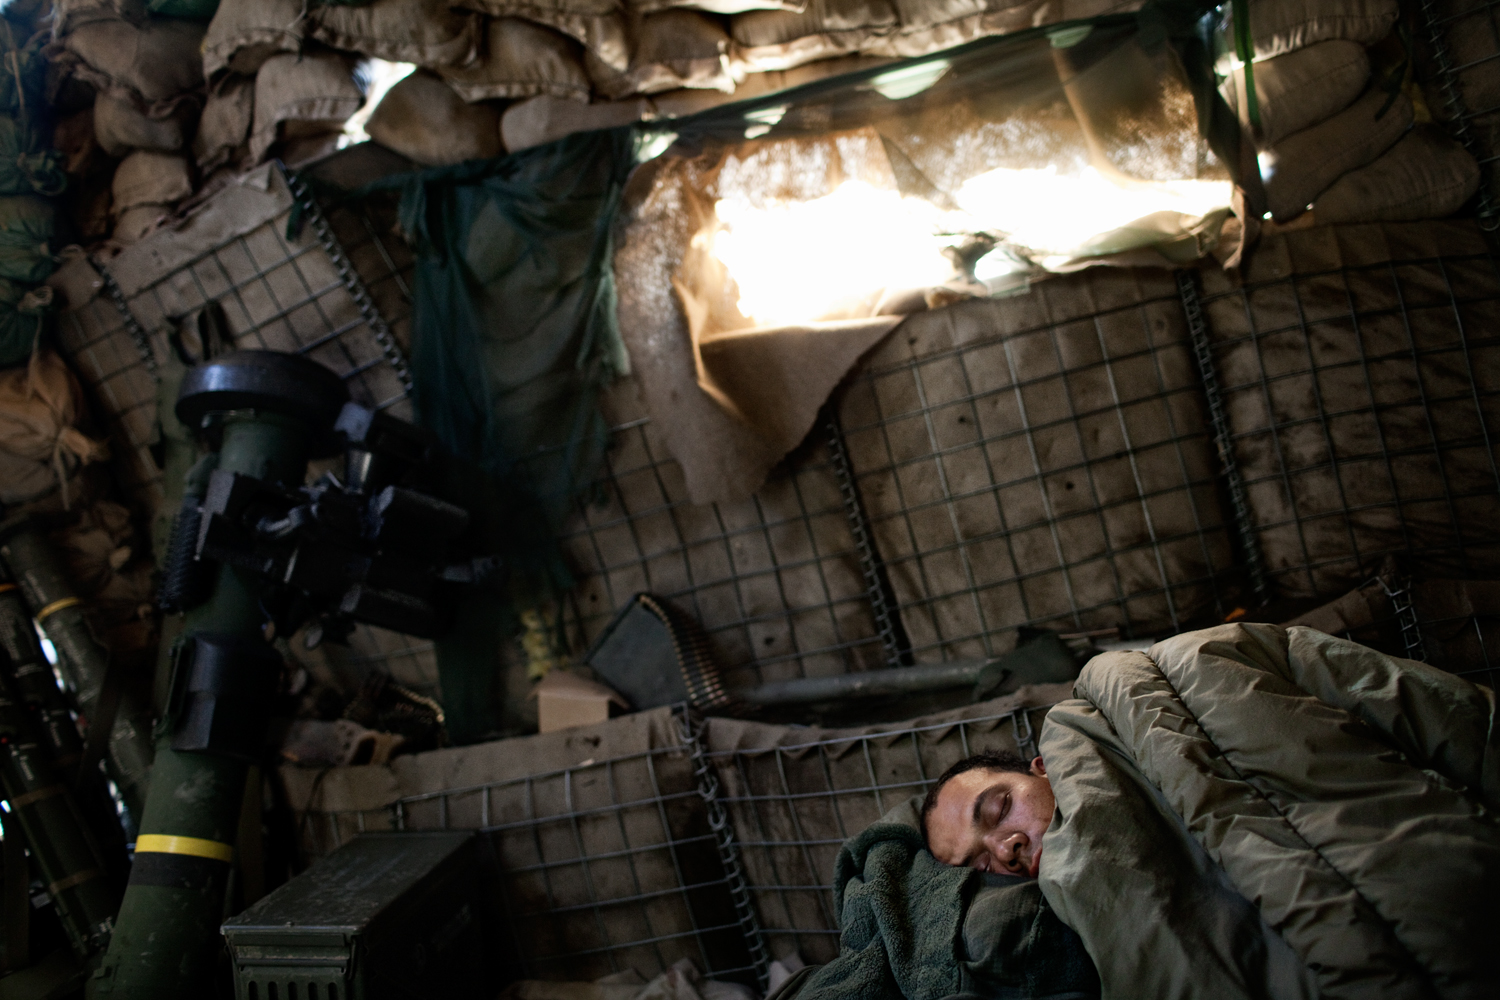 A U.S. Army sergeant sleeps at Observation Post Dallas in the Korengal Valley, Kunar Province, Afghanistan.